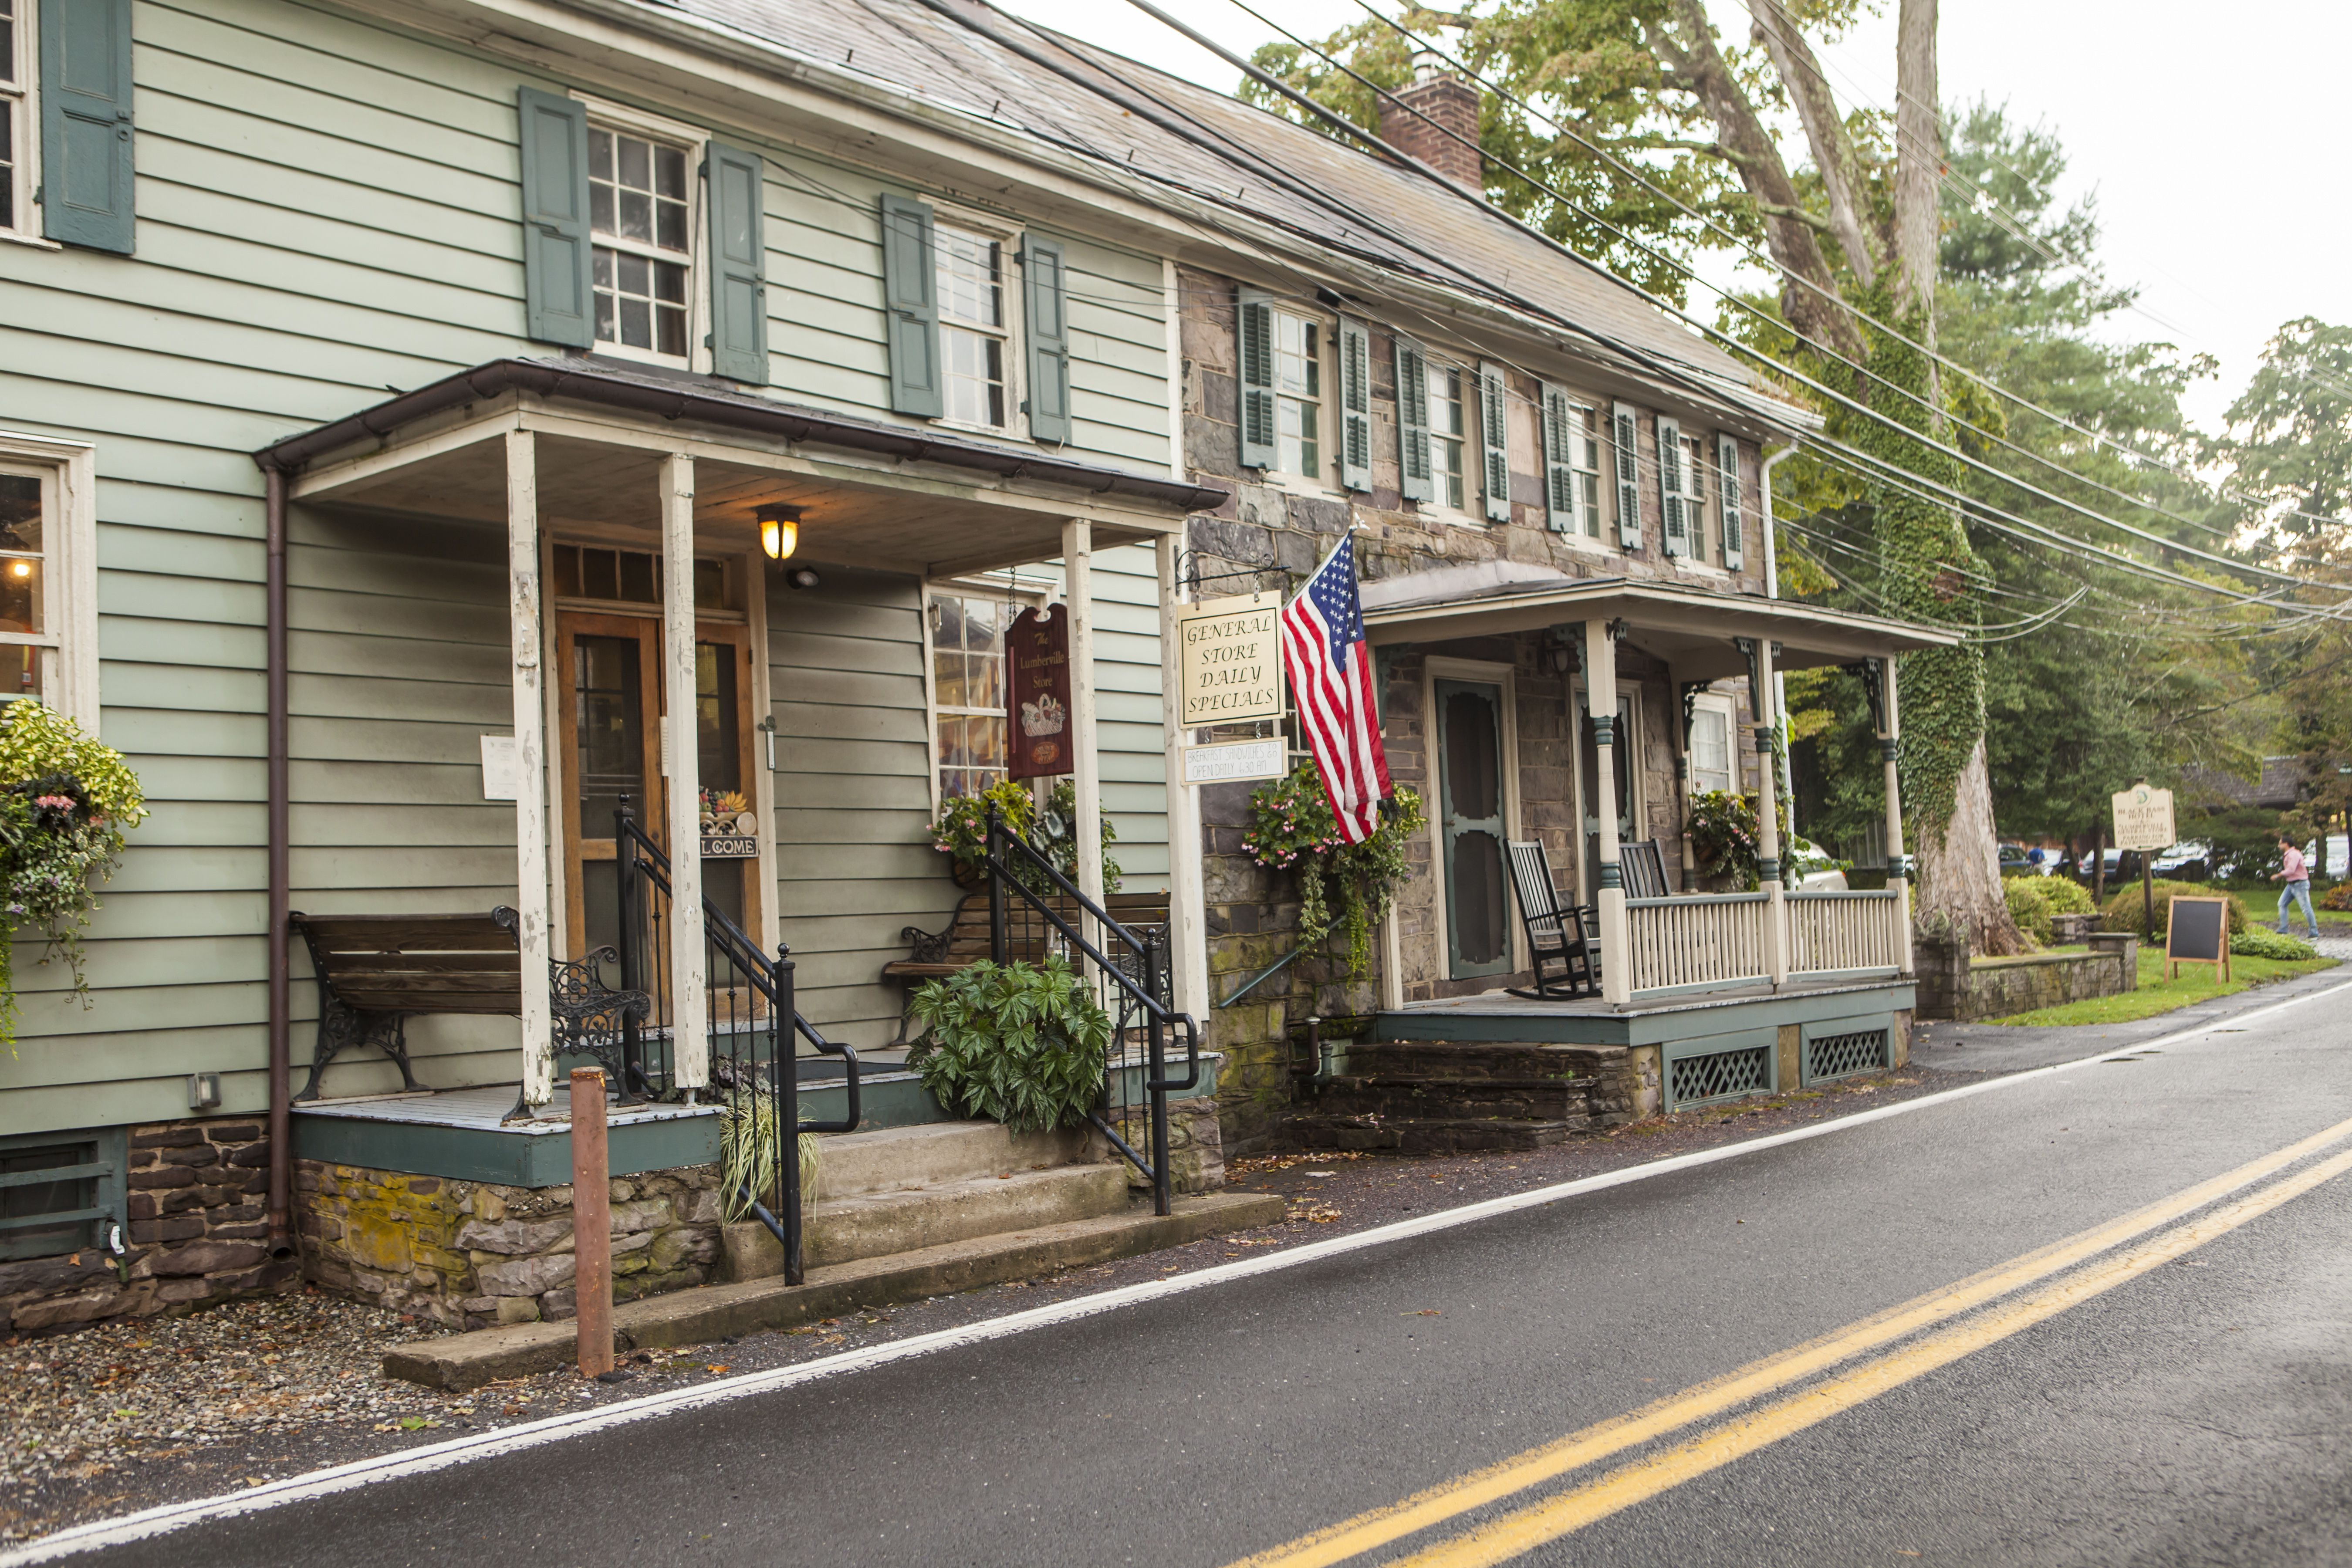 The Best Things to Do in Bucks County, Pennsylvania